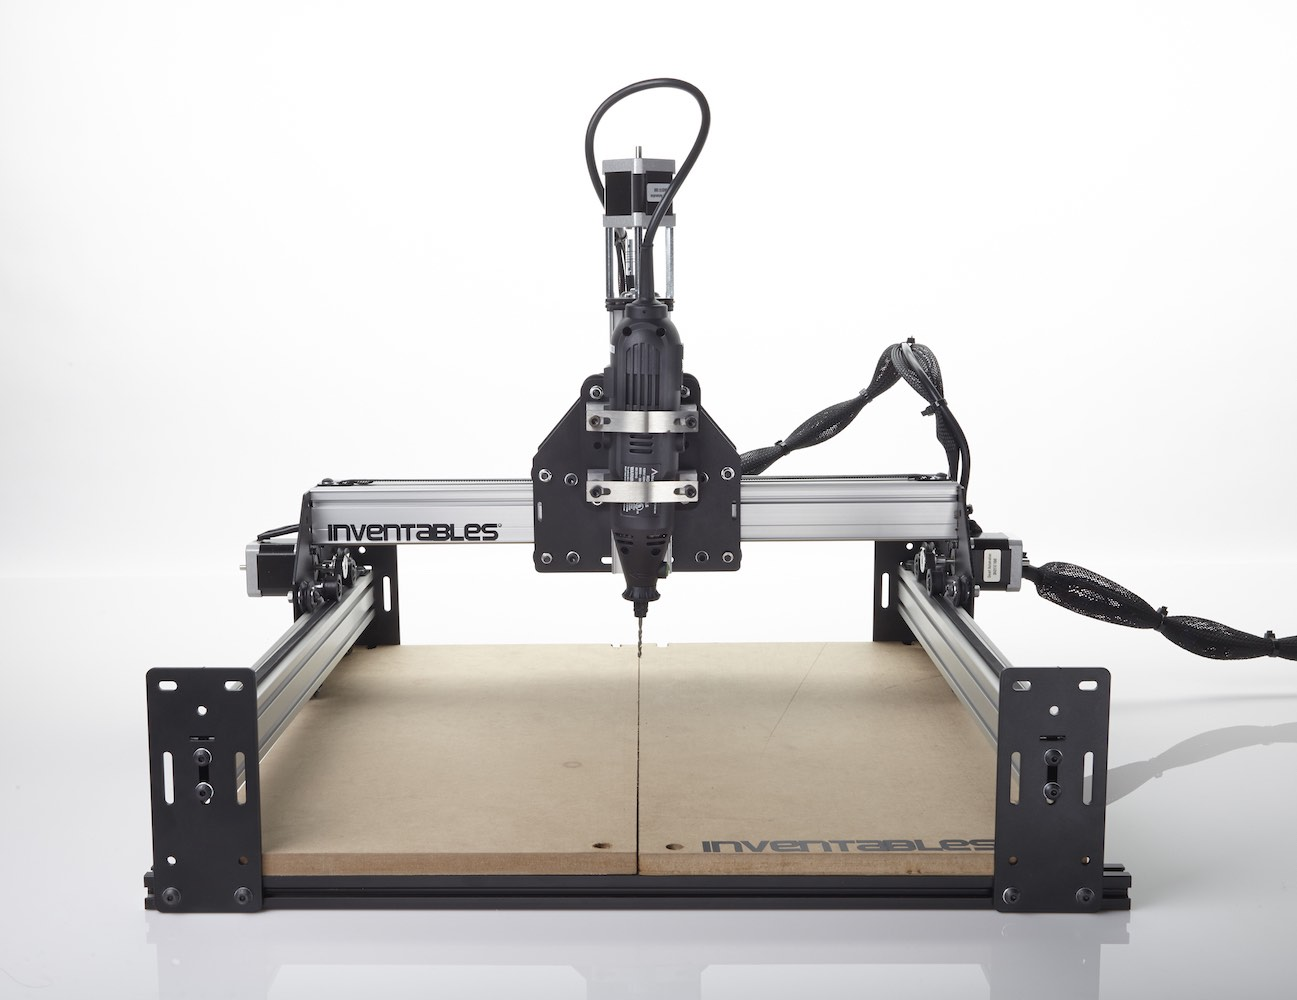 X-Carve Open Source CNC Machine